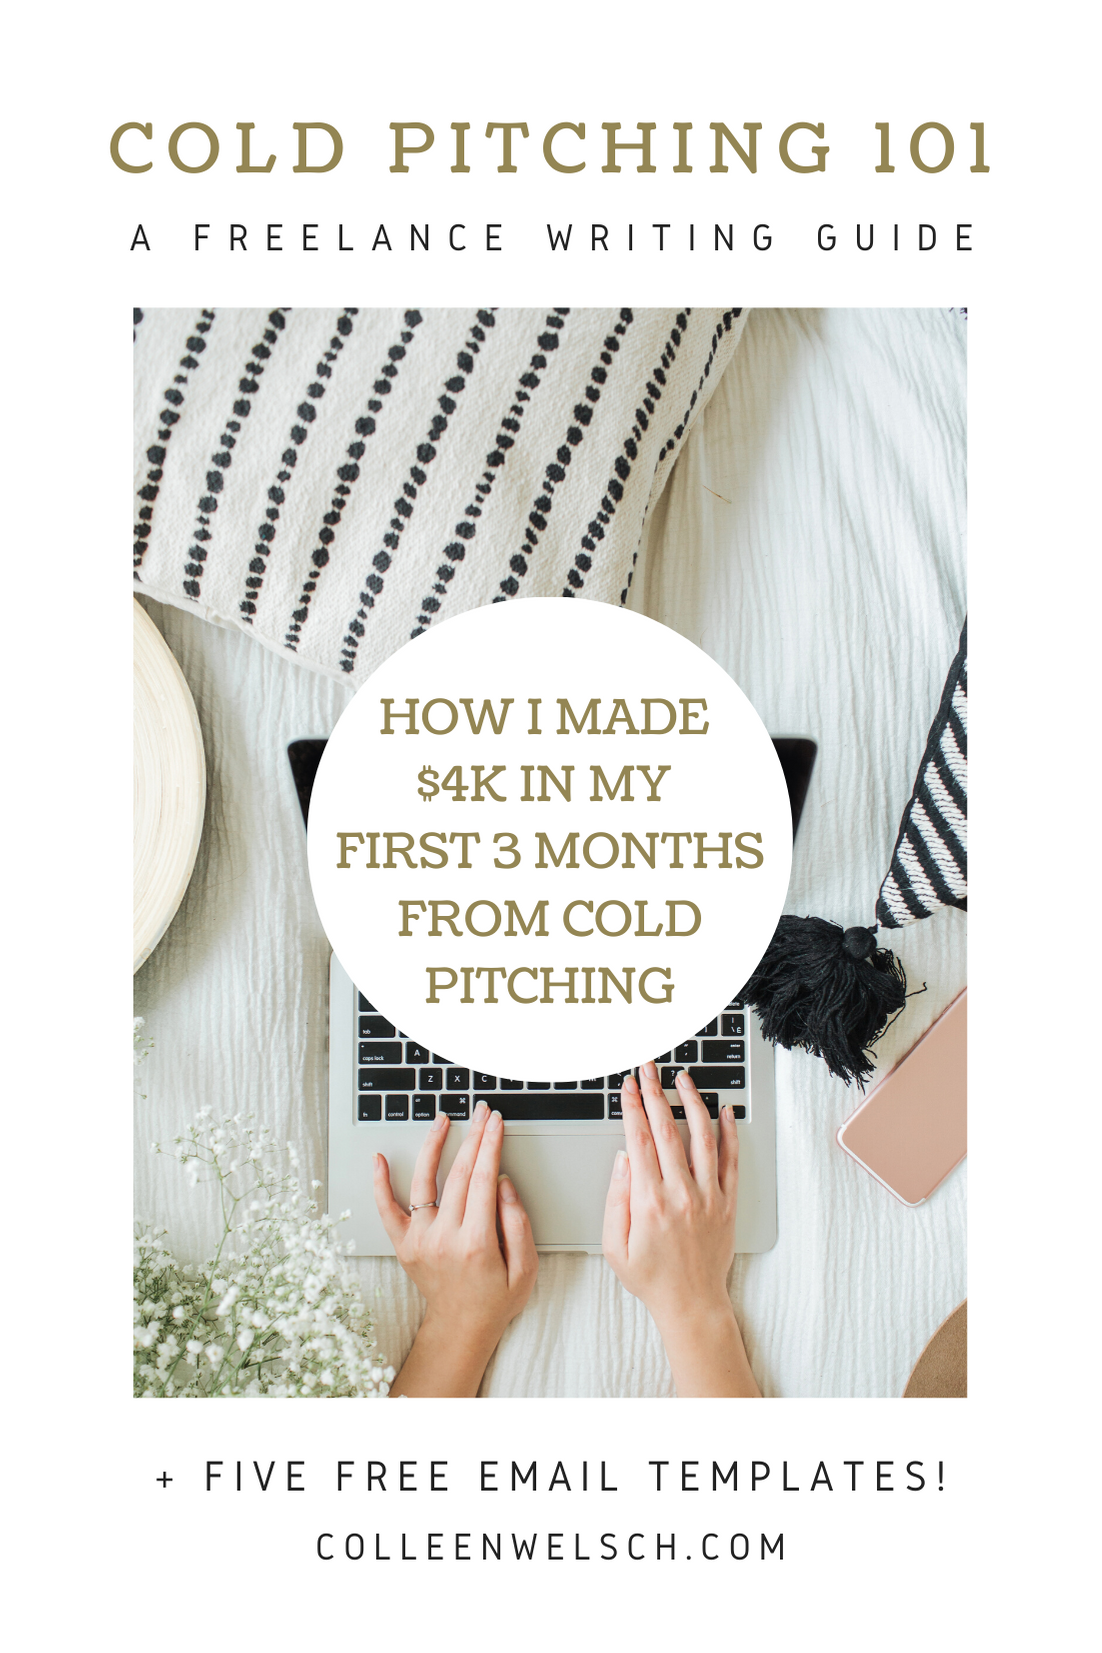 Cold Pitching 101 For Freelance Writers Free Templates Freelance Writing Guided Writing Free Email Templates